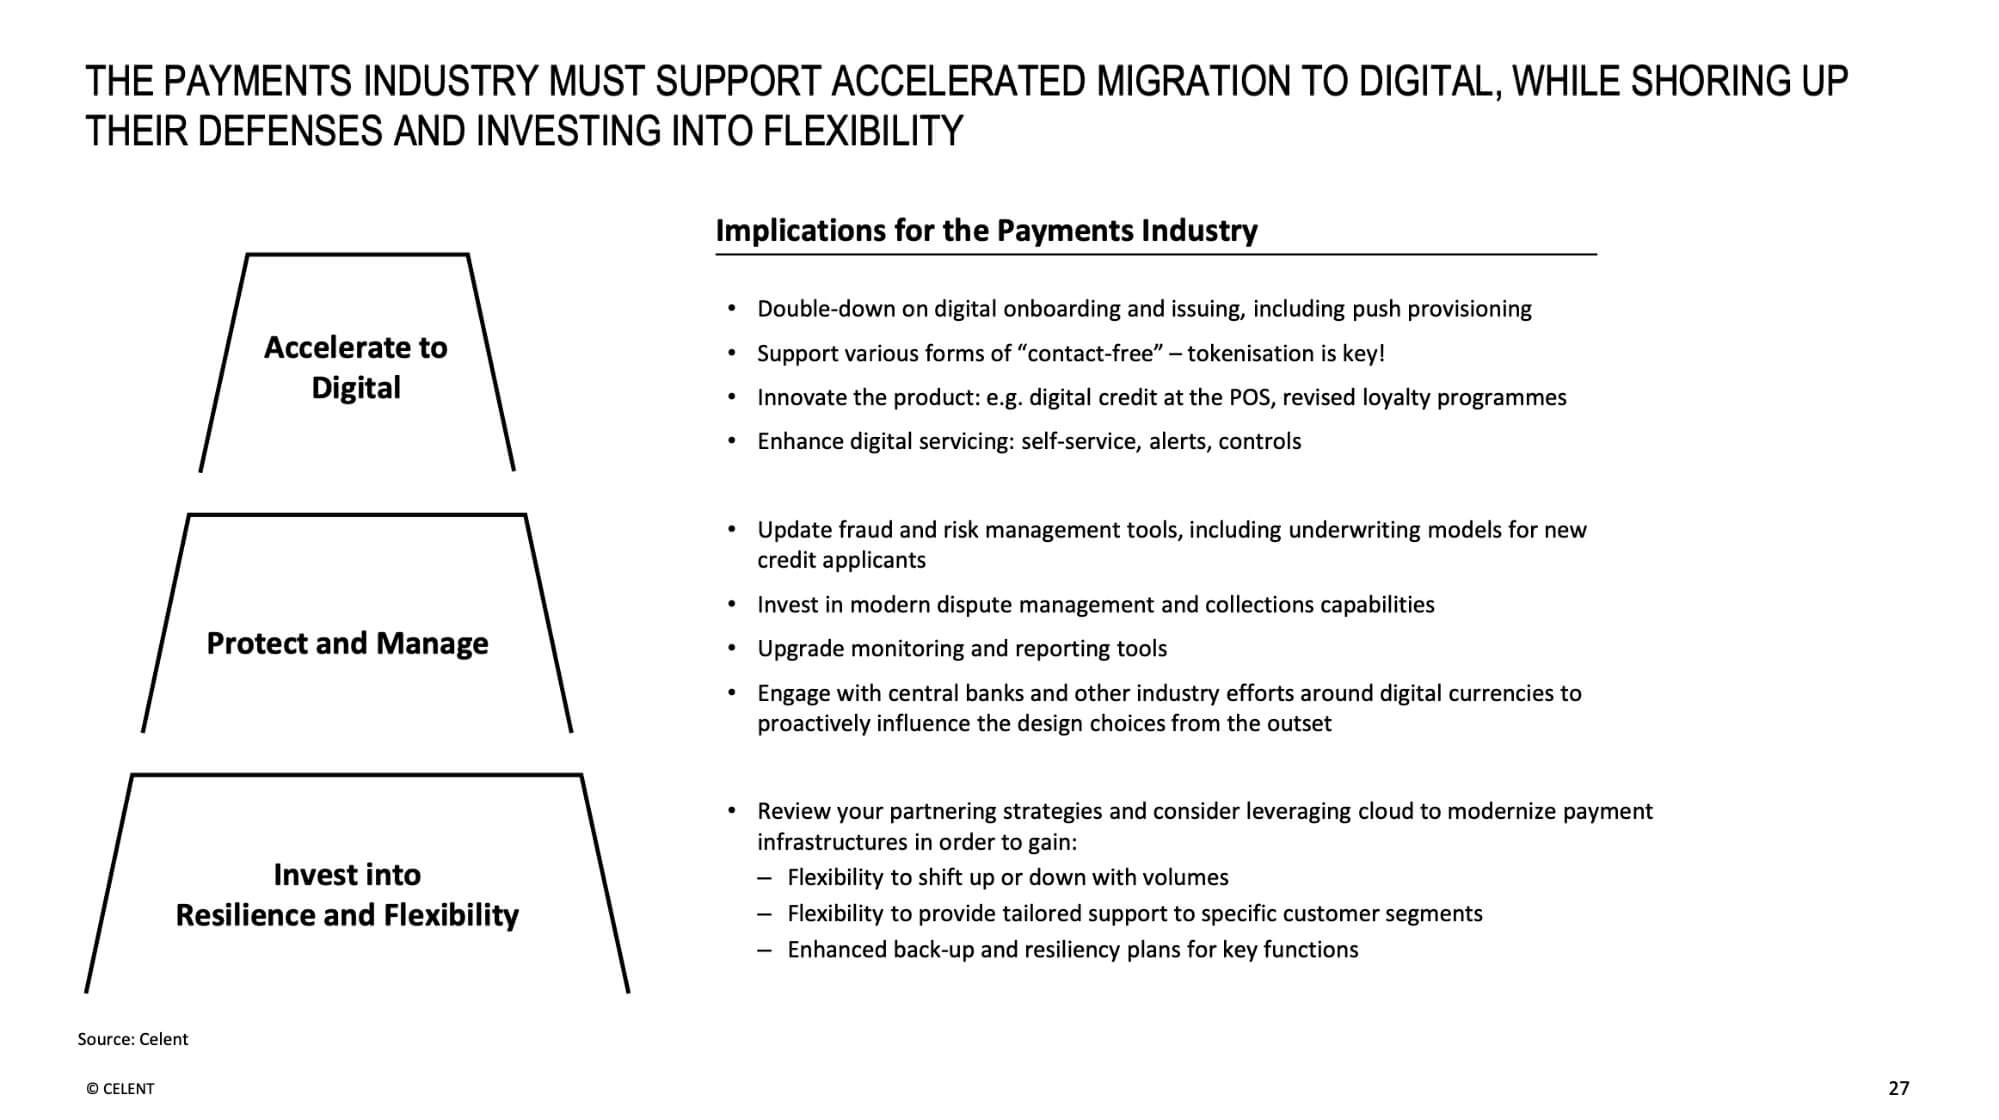 The payments industry must support accelerated migration to digital, while shoring up their defenses and investing into flexibility